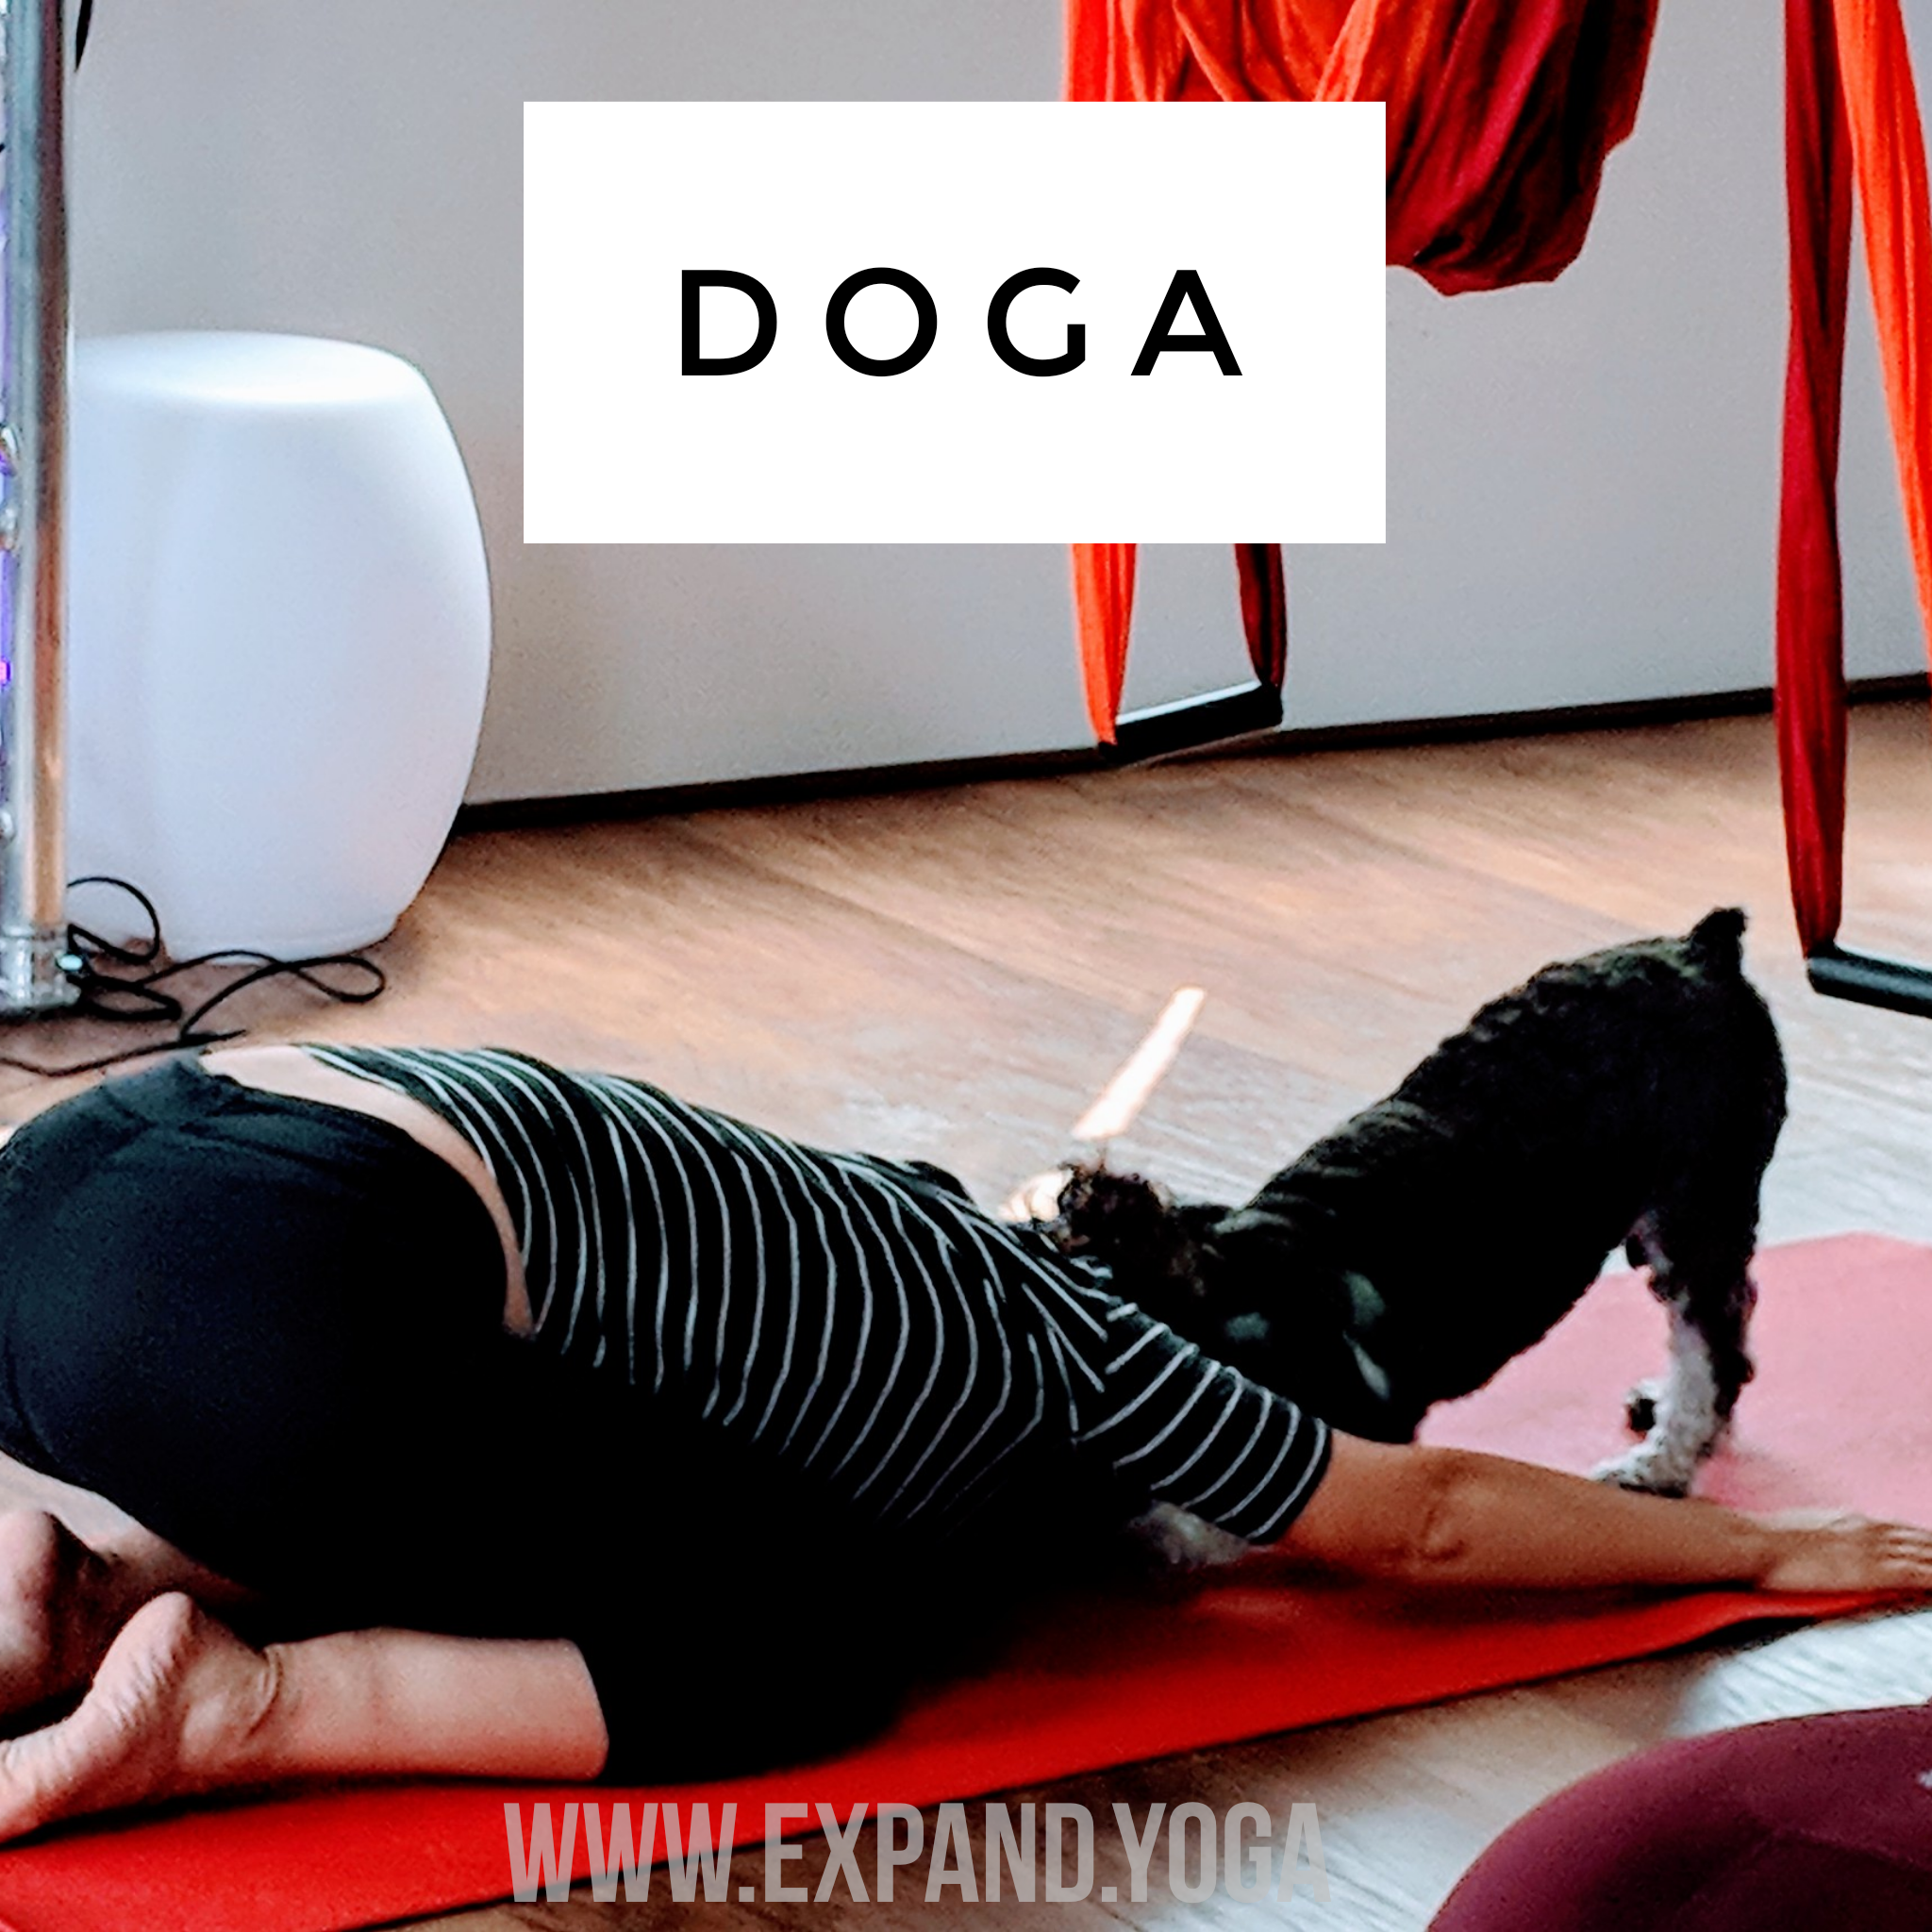 Expand DOGA Apr 15 (27)